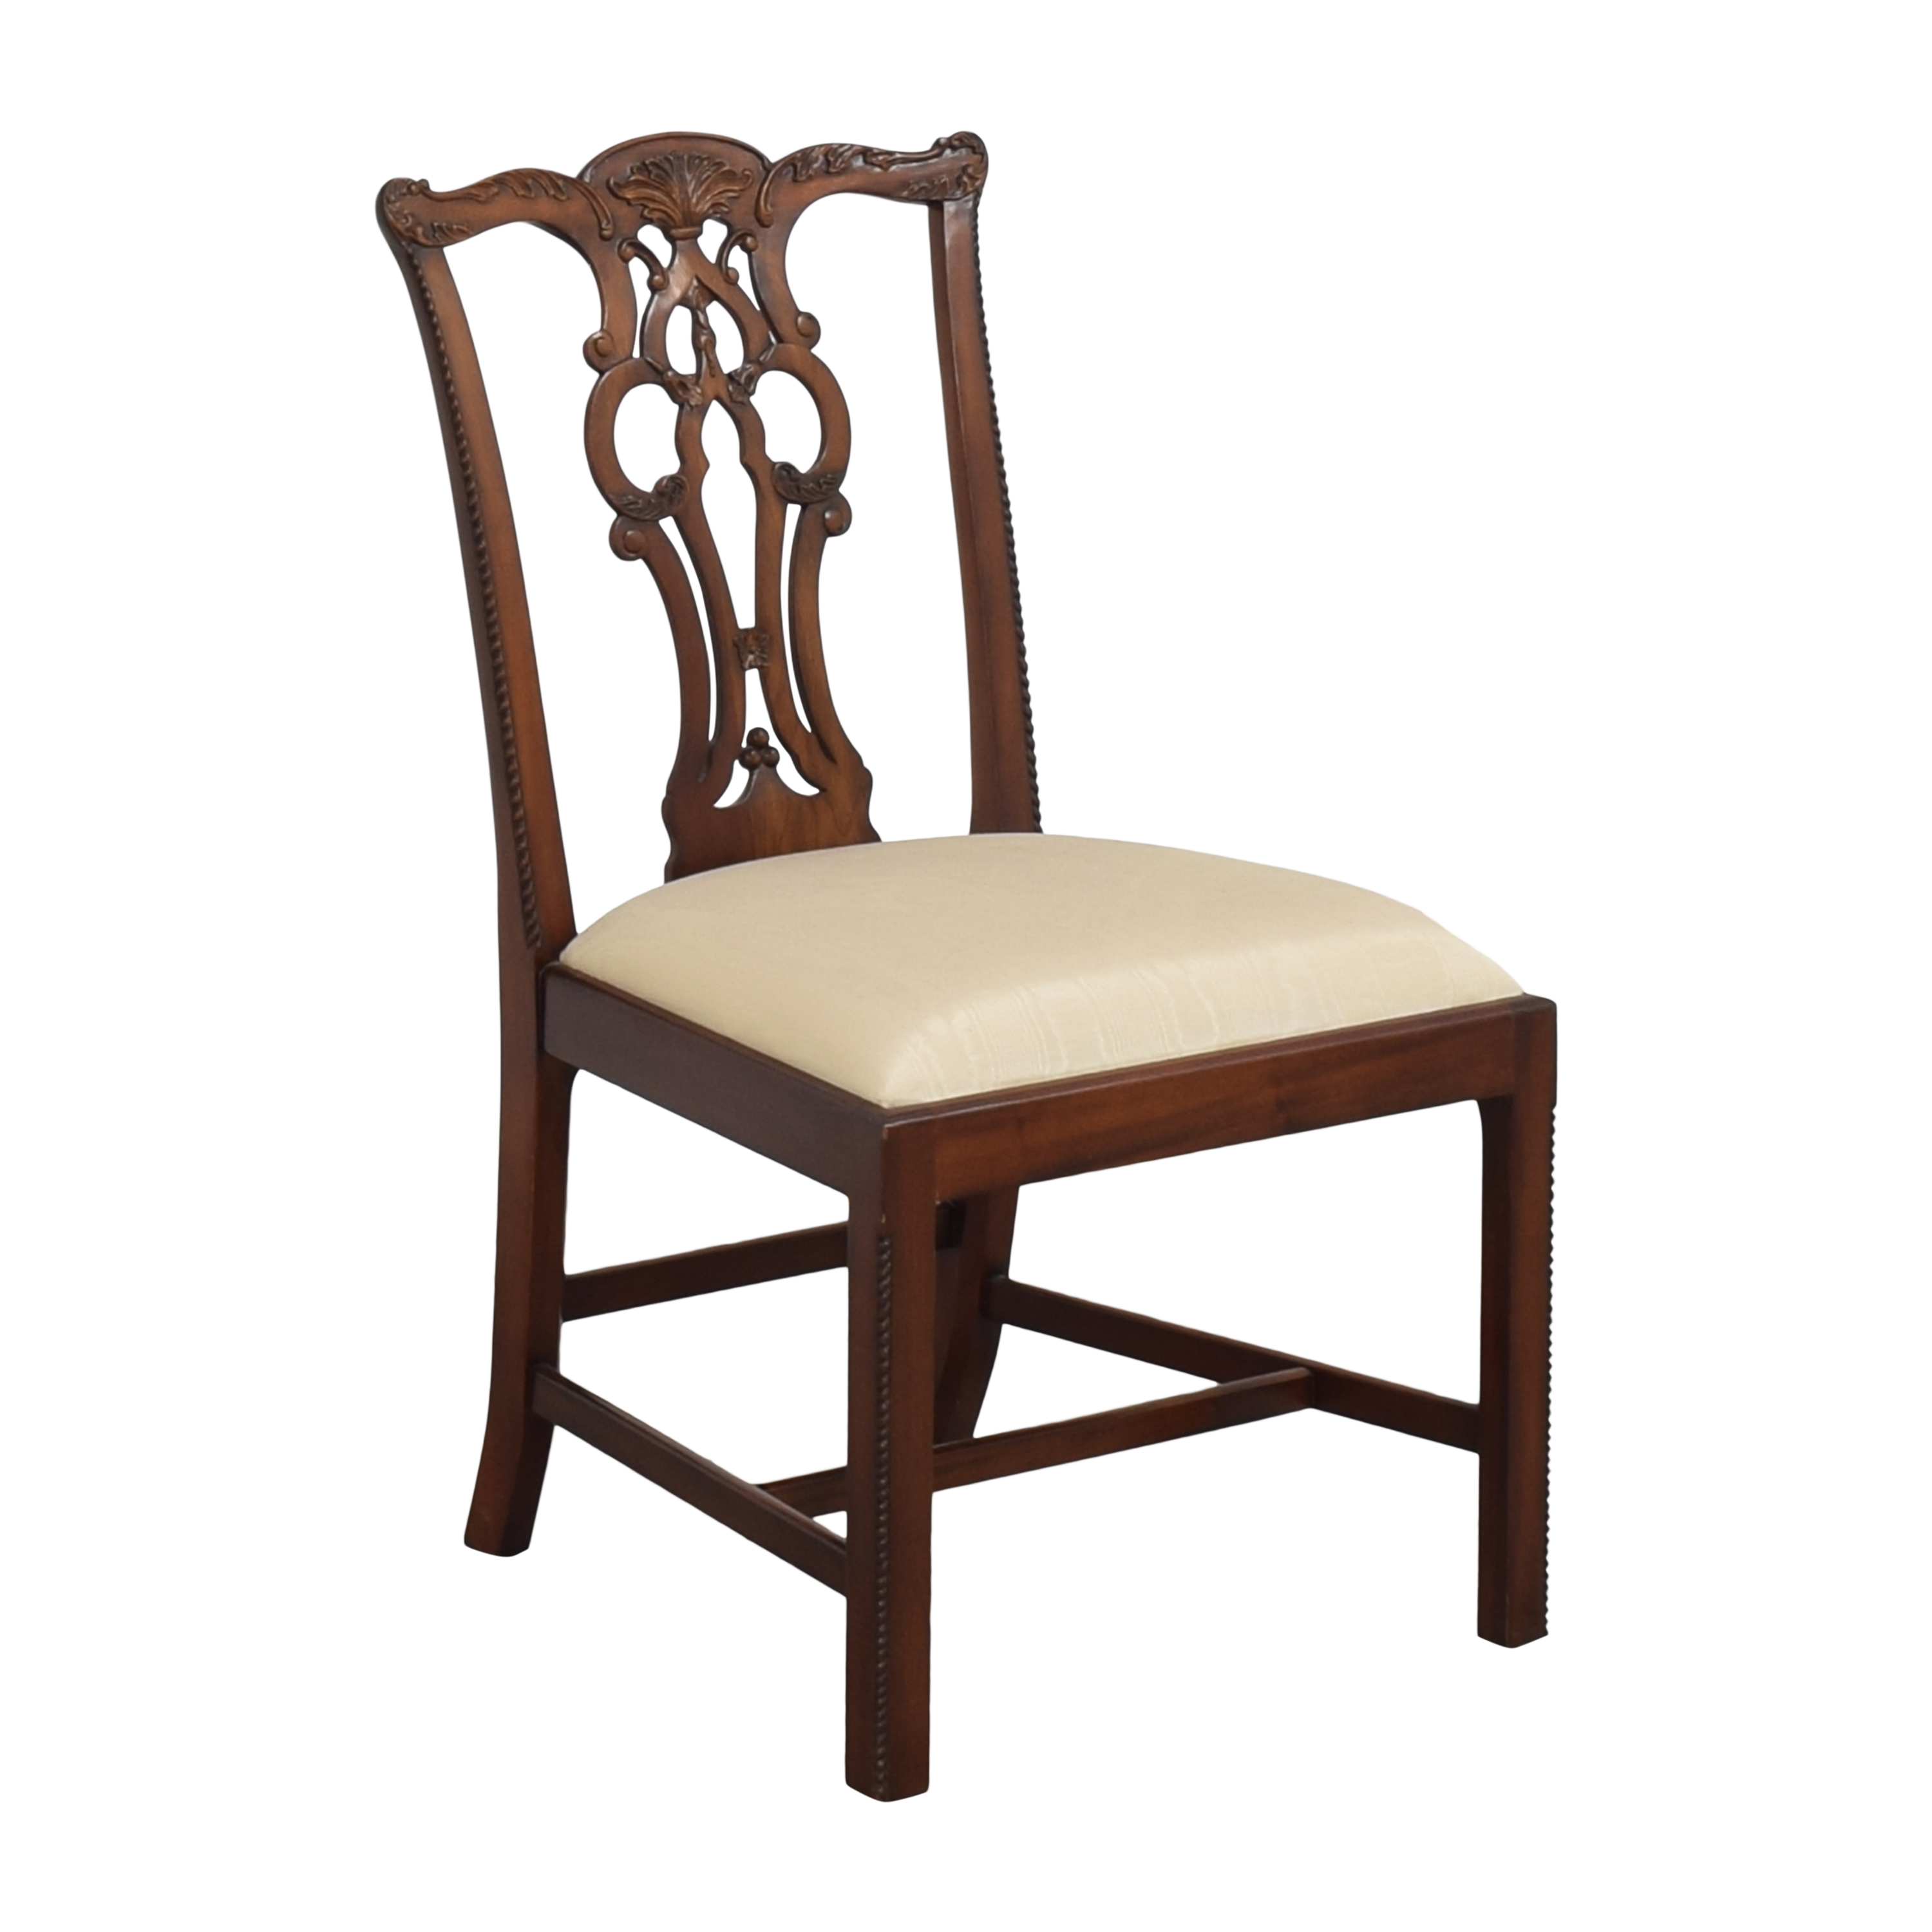 Maitland-Smith Chippendale Dining Side Chair / Chairs